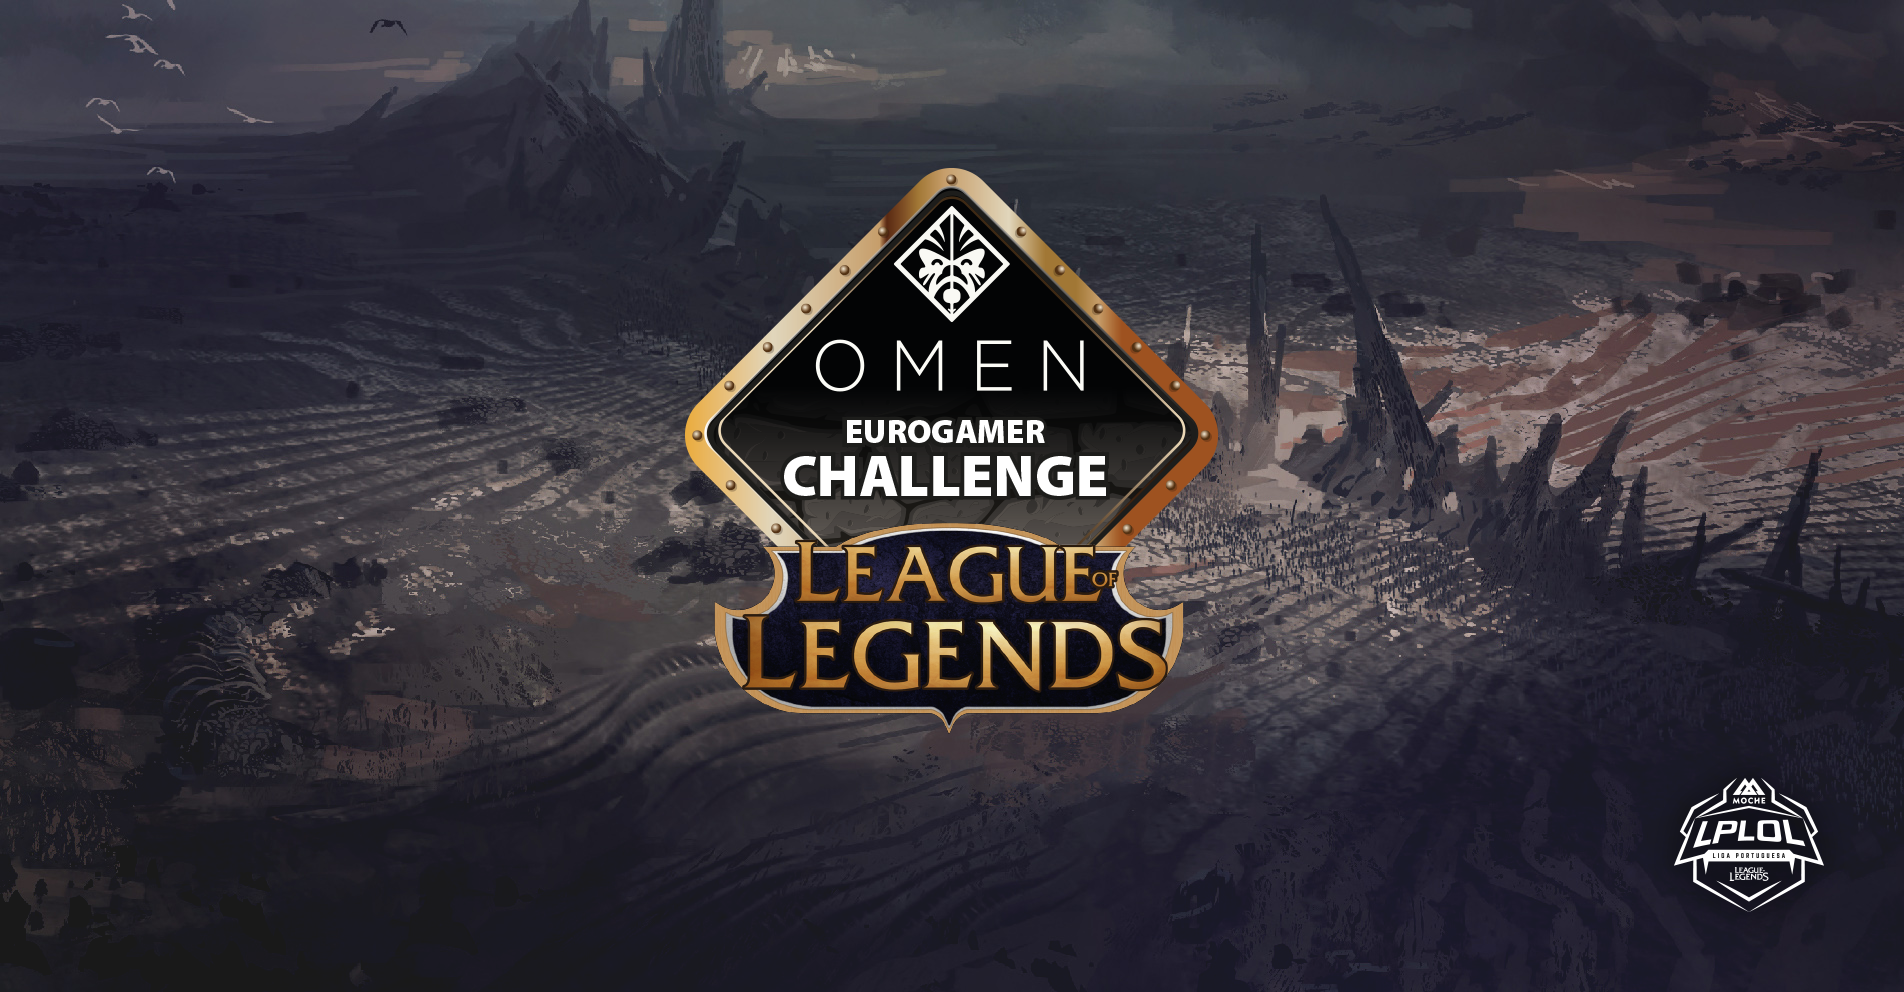 Regresso do Omen Eurogamer LoL Challenge!